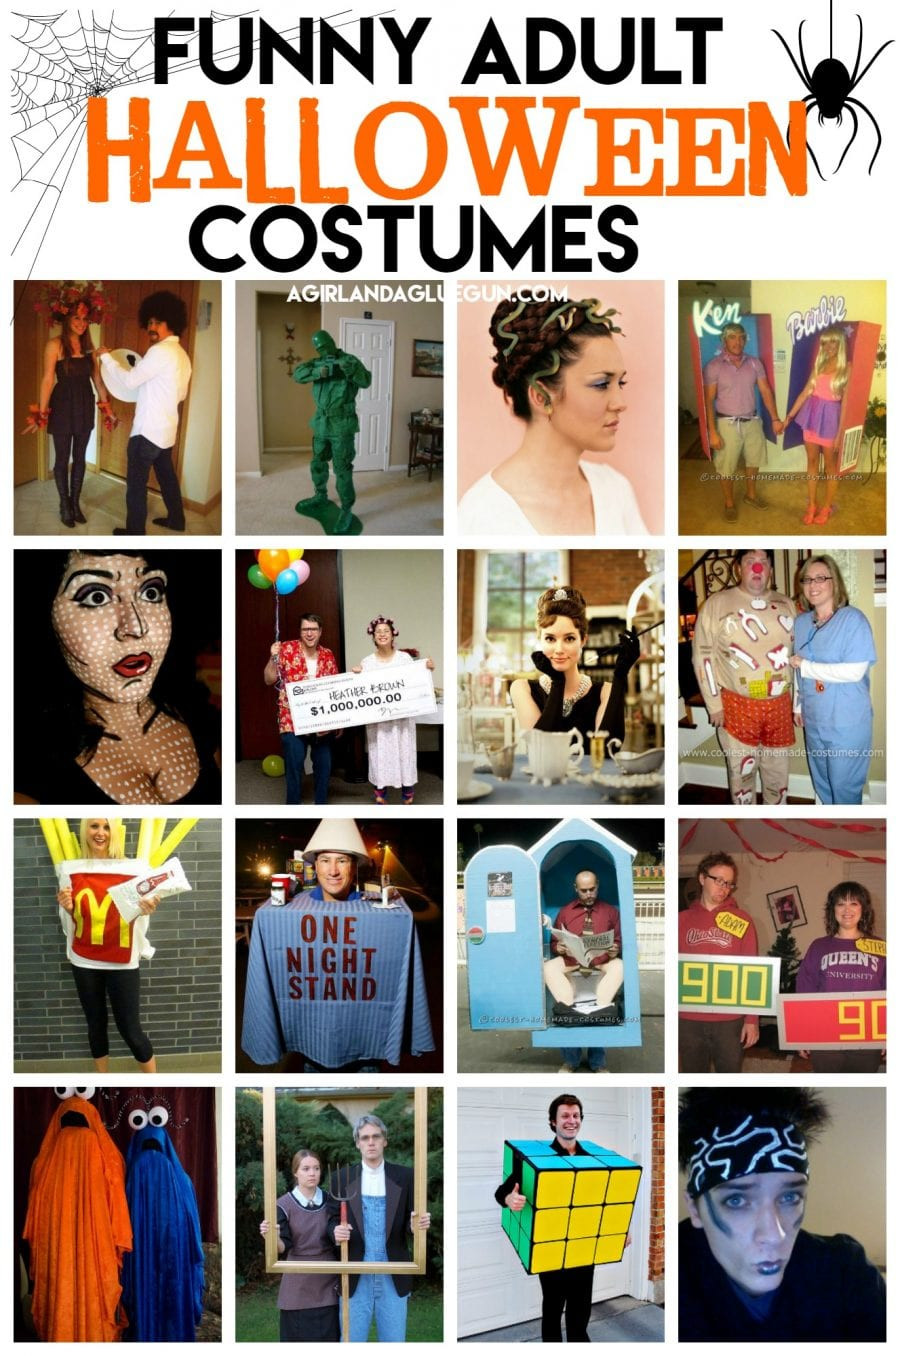 Best ideas about DIY Halloween Costumes For Adults Funny . Save or Pin Funny Halloween Costumes for Adults that you can DIY A Now.